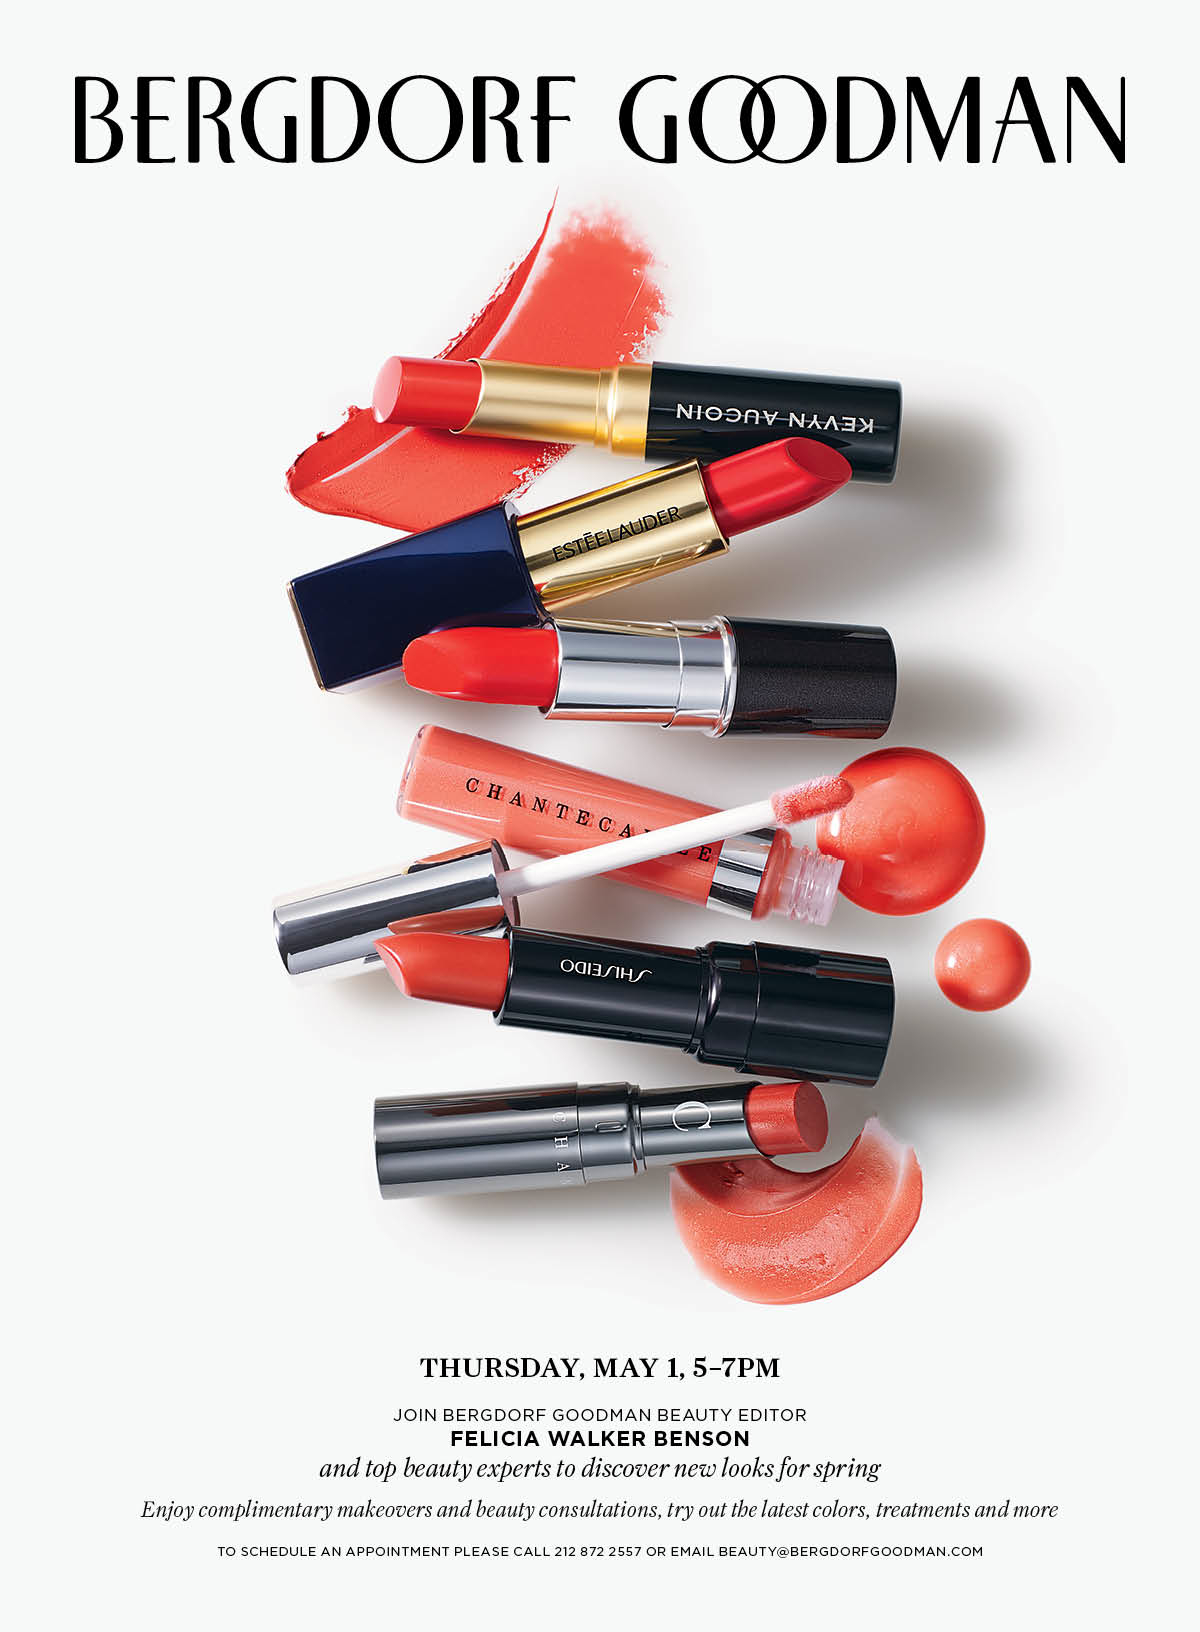 Complimentary Makeovers At Bergdorf Goodman On May 1